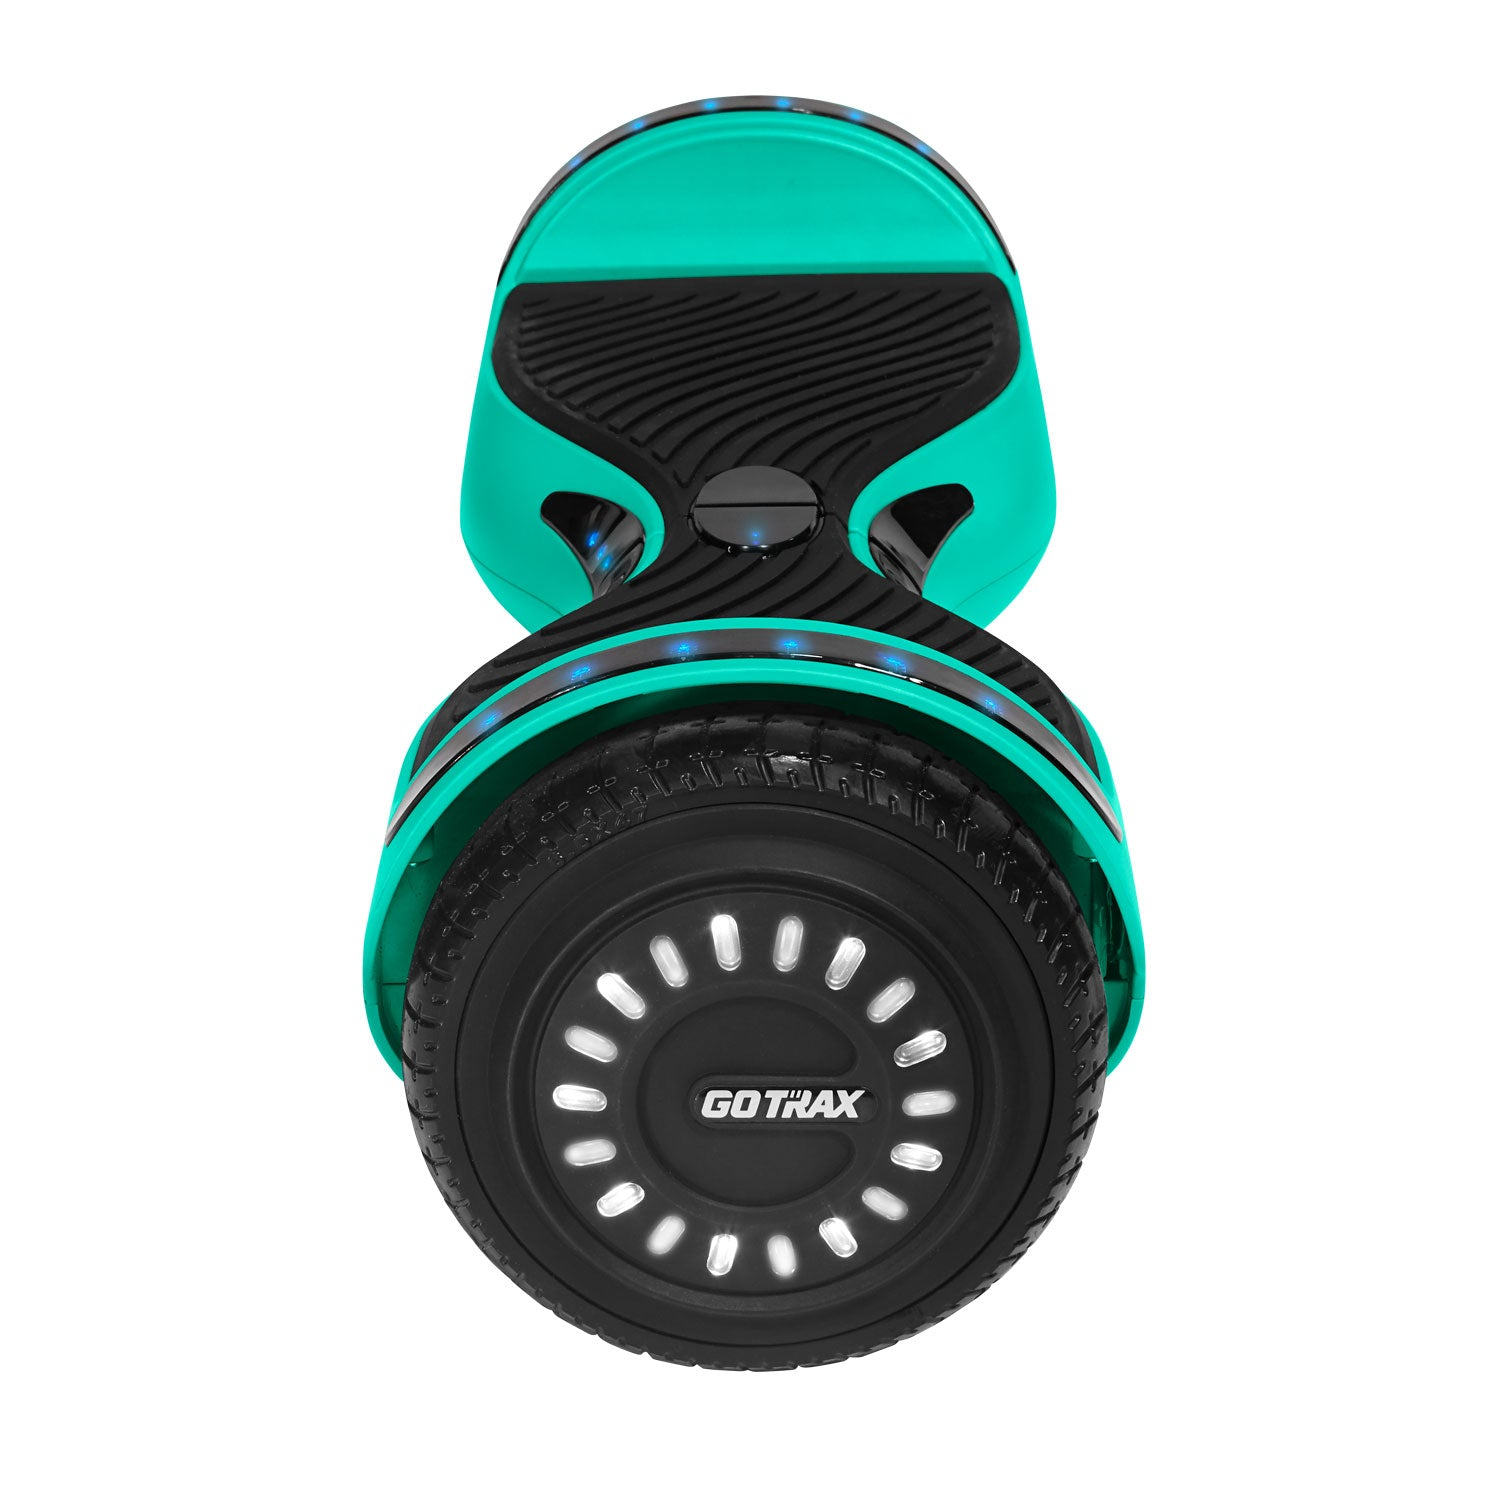 Teal hoverfly E2 bluetooth hoverboard wheel image